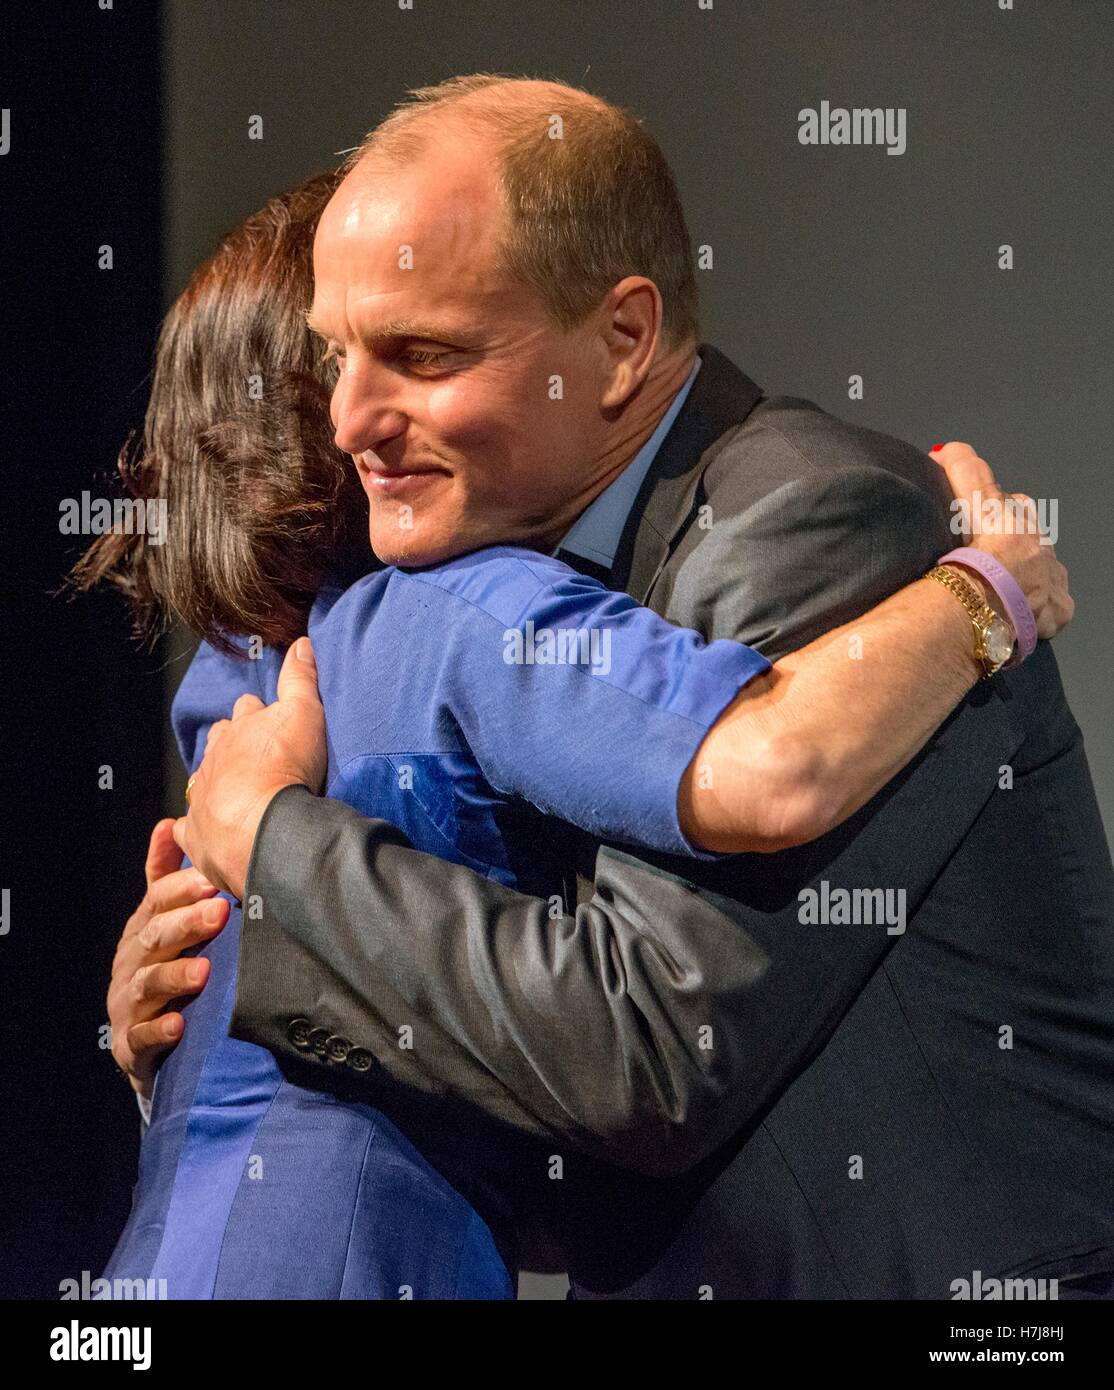 Daughter of former U.S. President Lyndon B. Johnson Luci Baines Johnson hugs actor Woody Harrelson after a screening Stock Photo